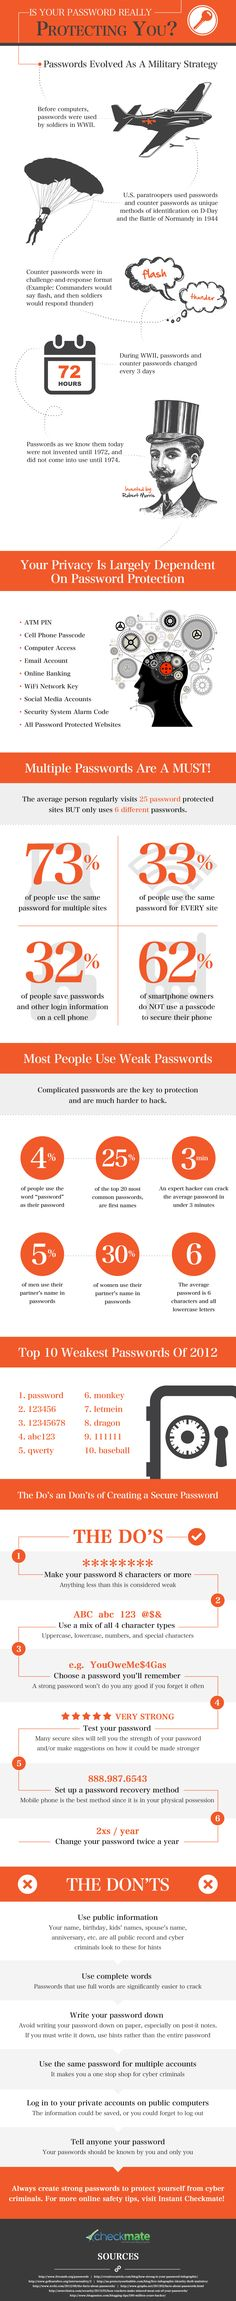 Is Your Password Really Protecting You?